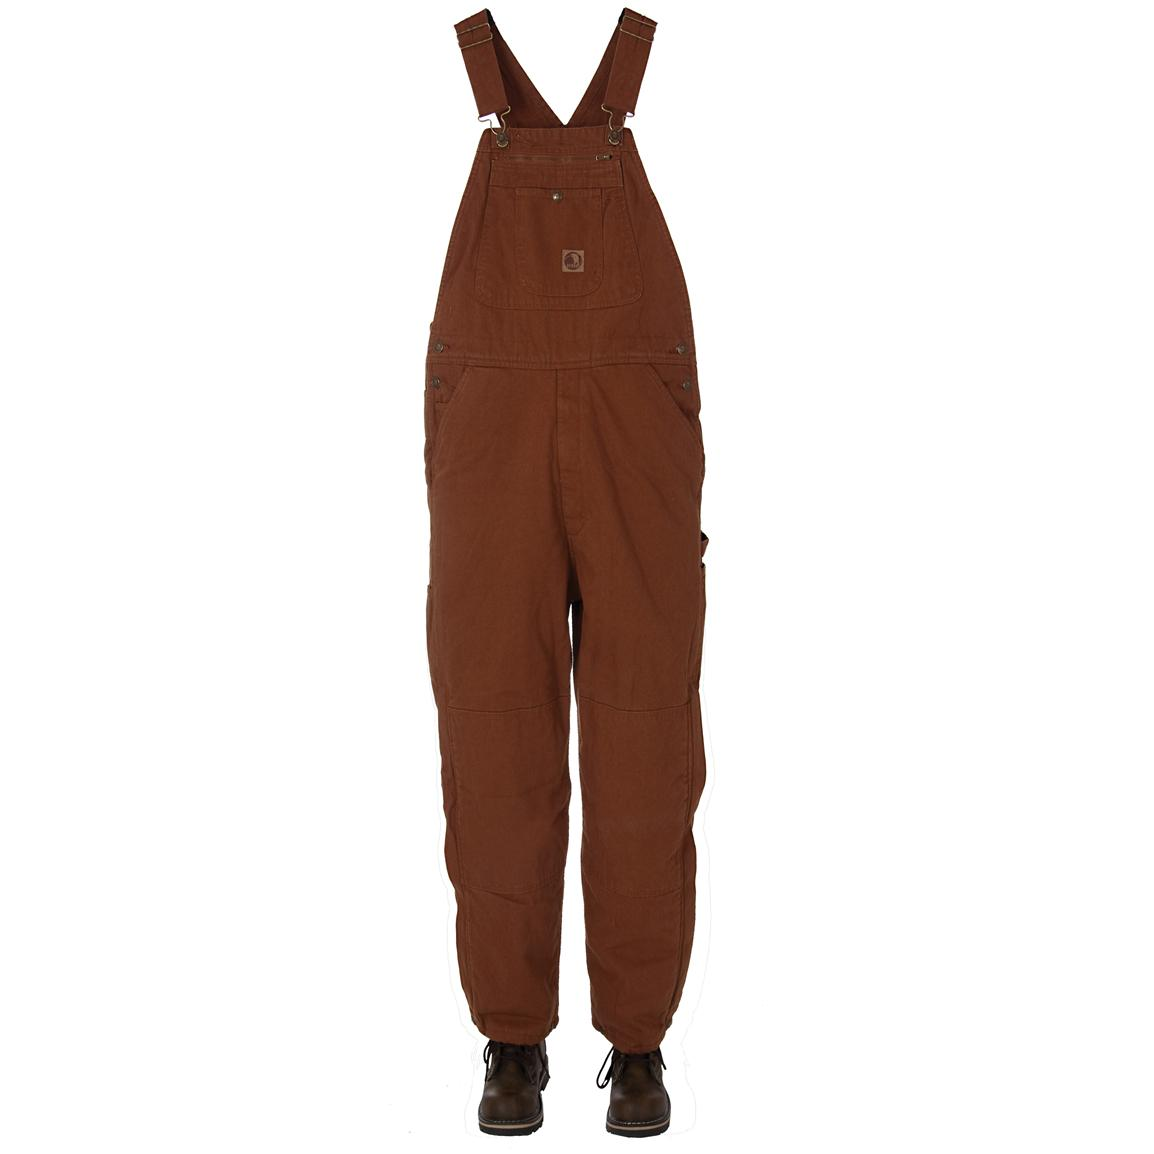 Men's Berne® Traditional Washed Insulated Bib Overalls, Tobacco